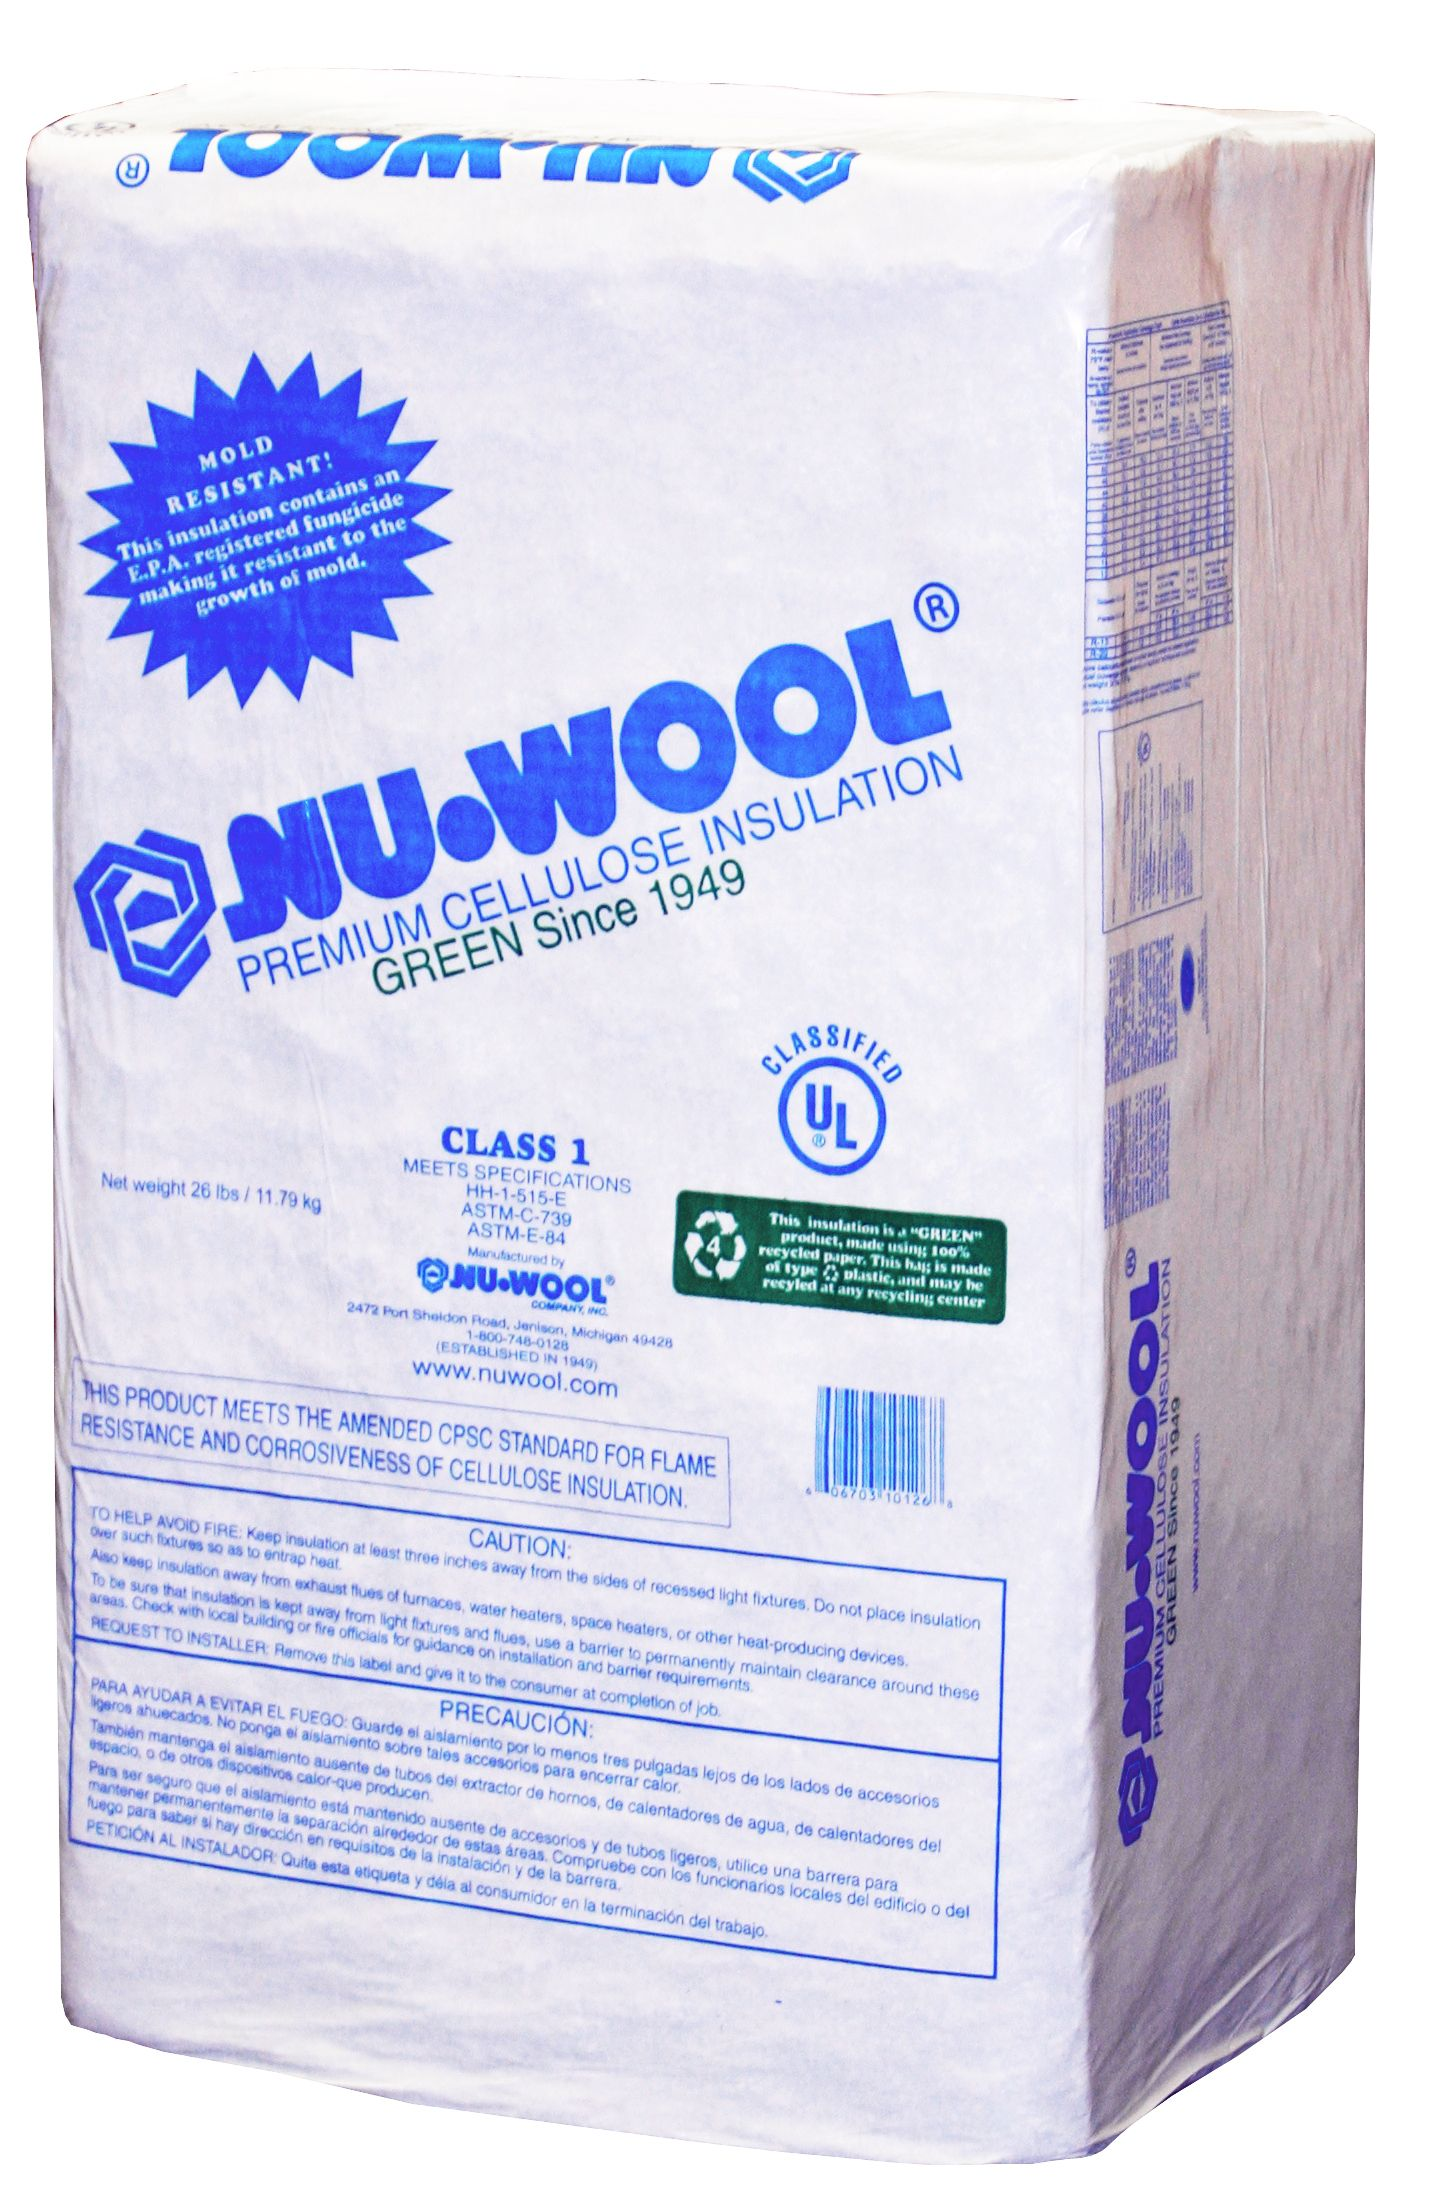 Eco friendly home insulation products - Established In Nu Wool Is A Leading Manufacturer Of Eco Friendly Cellulose Insulation Superior In Its Performance Green In Its Manufacturing